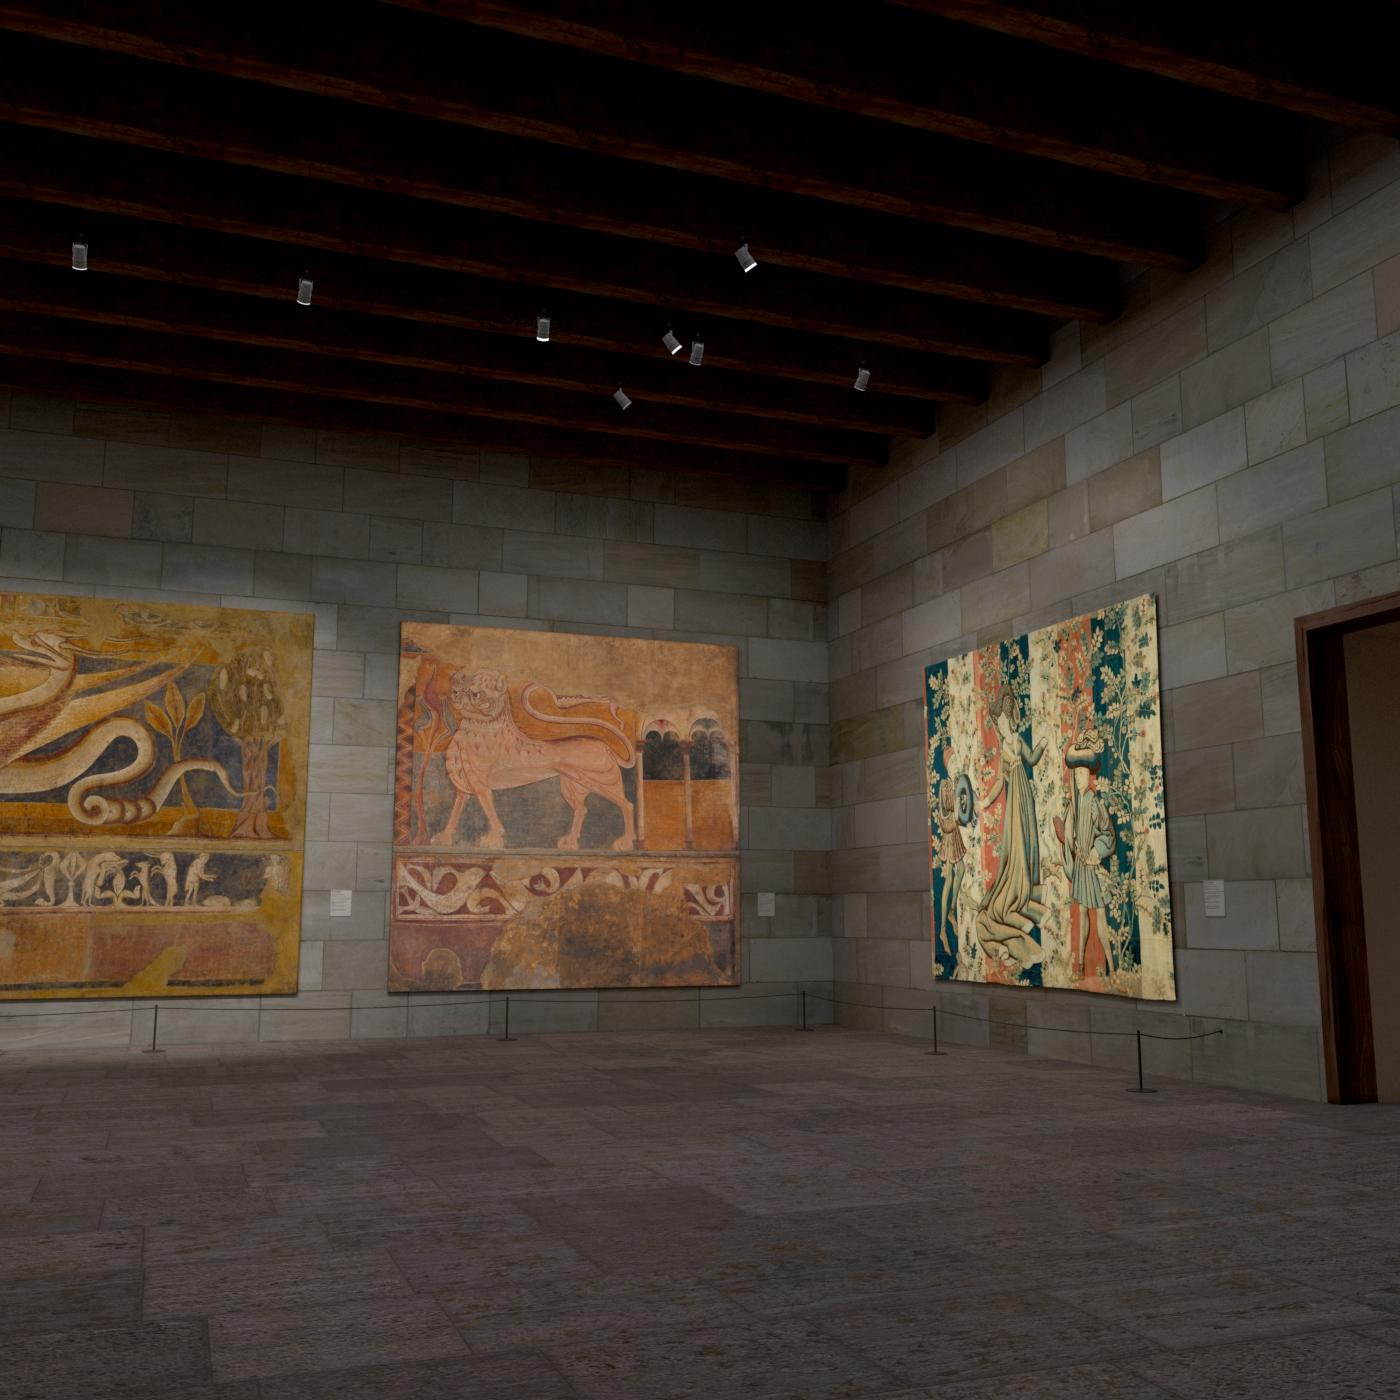 Digitally rendered view of The Met Cloisters, gallery 1. The room made of large stone and frescos of large creatures are on display.